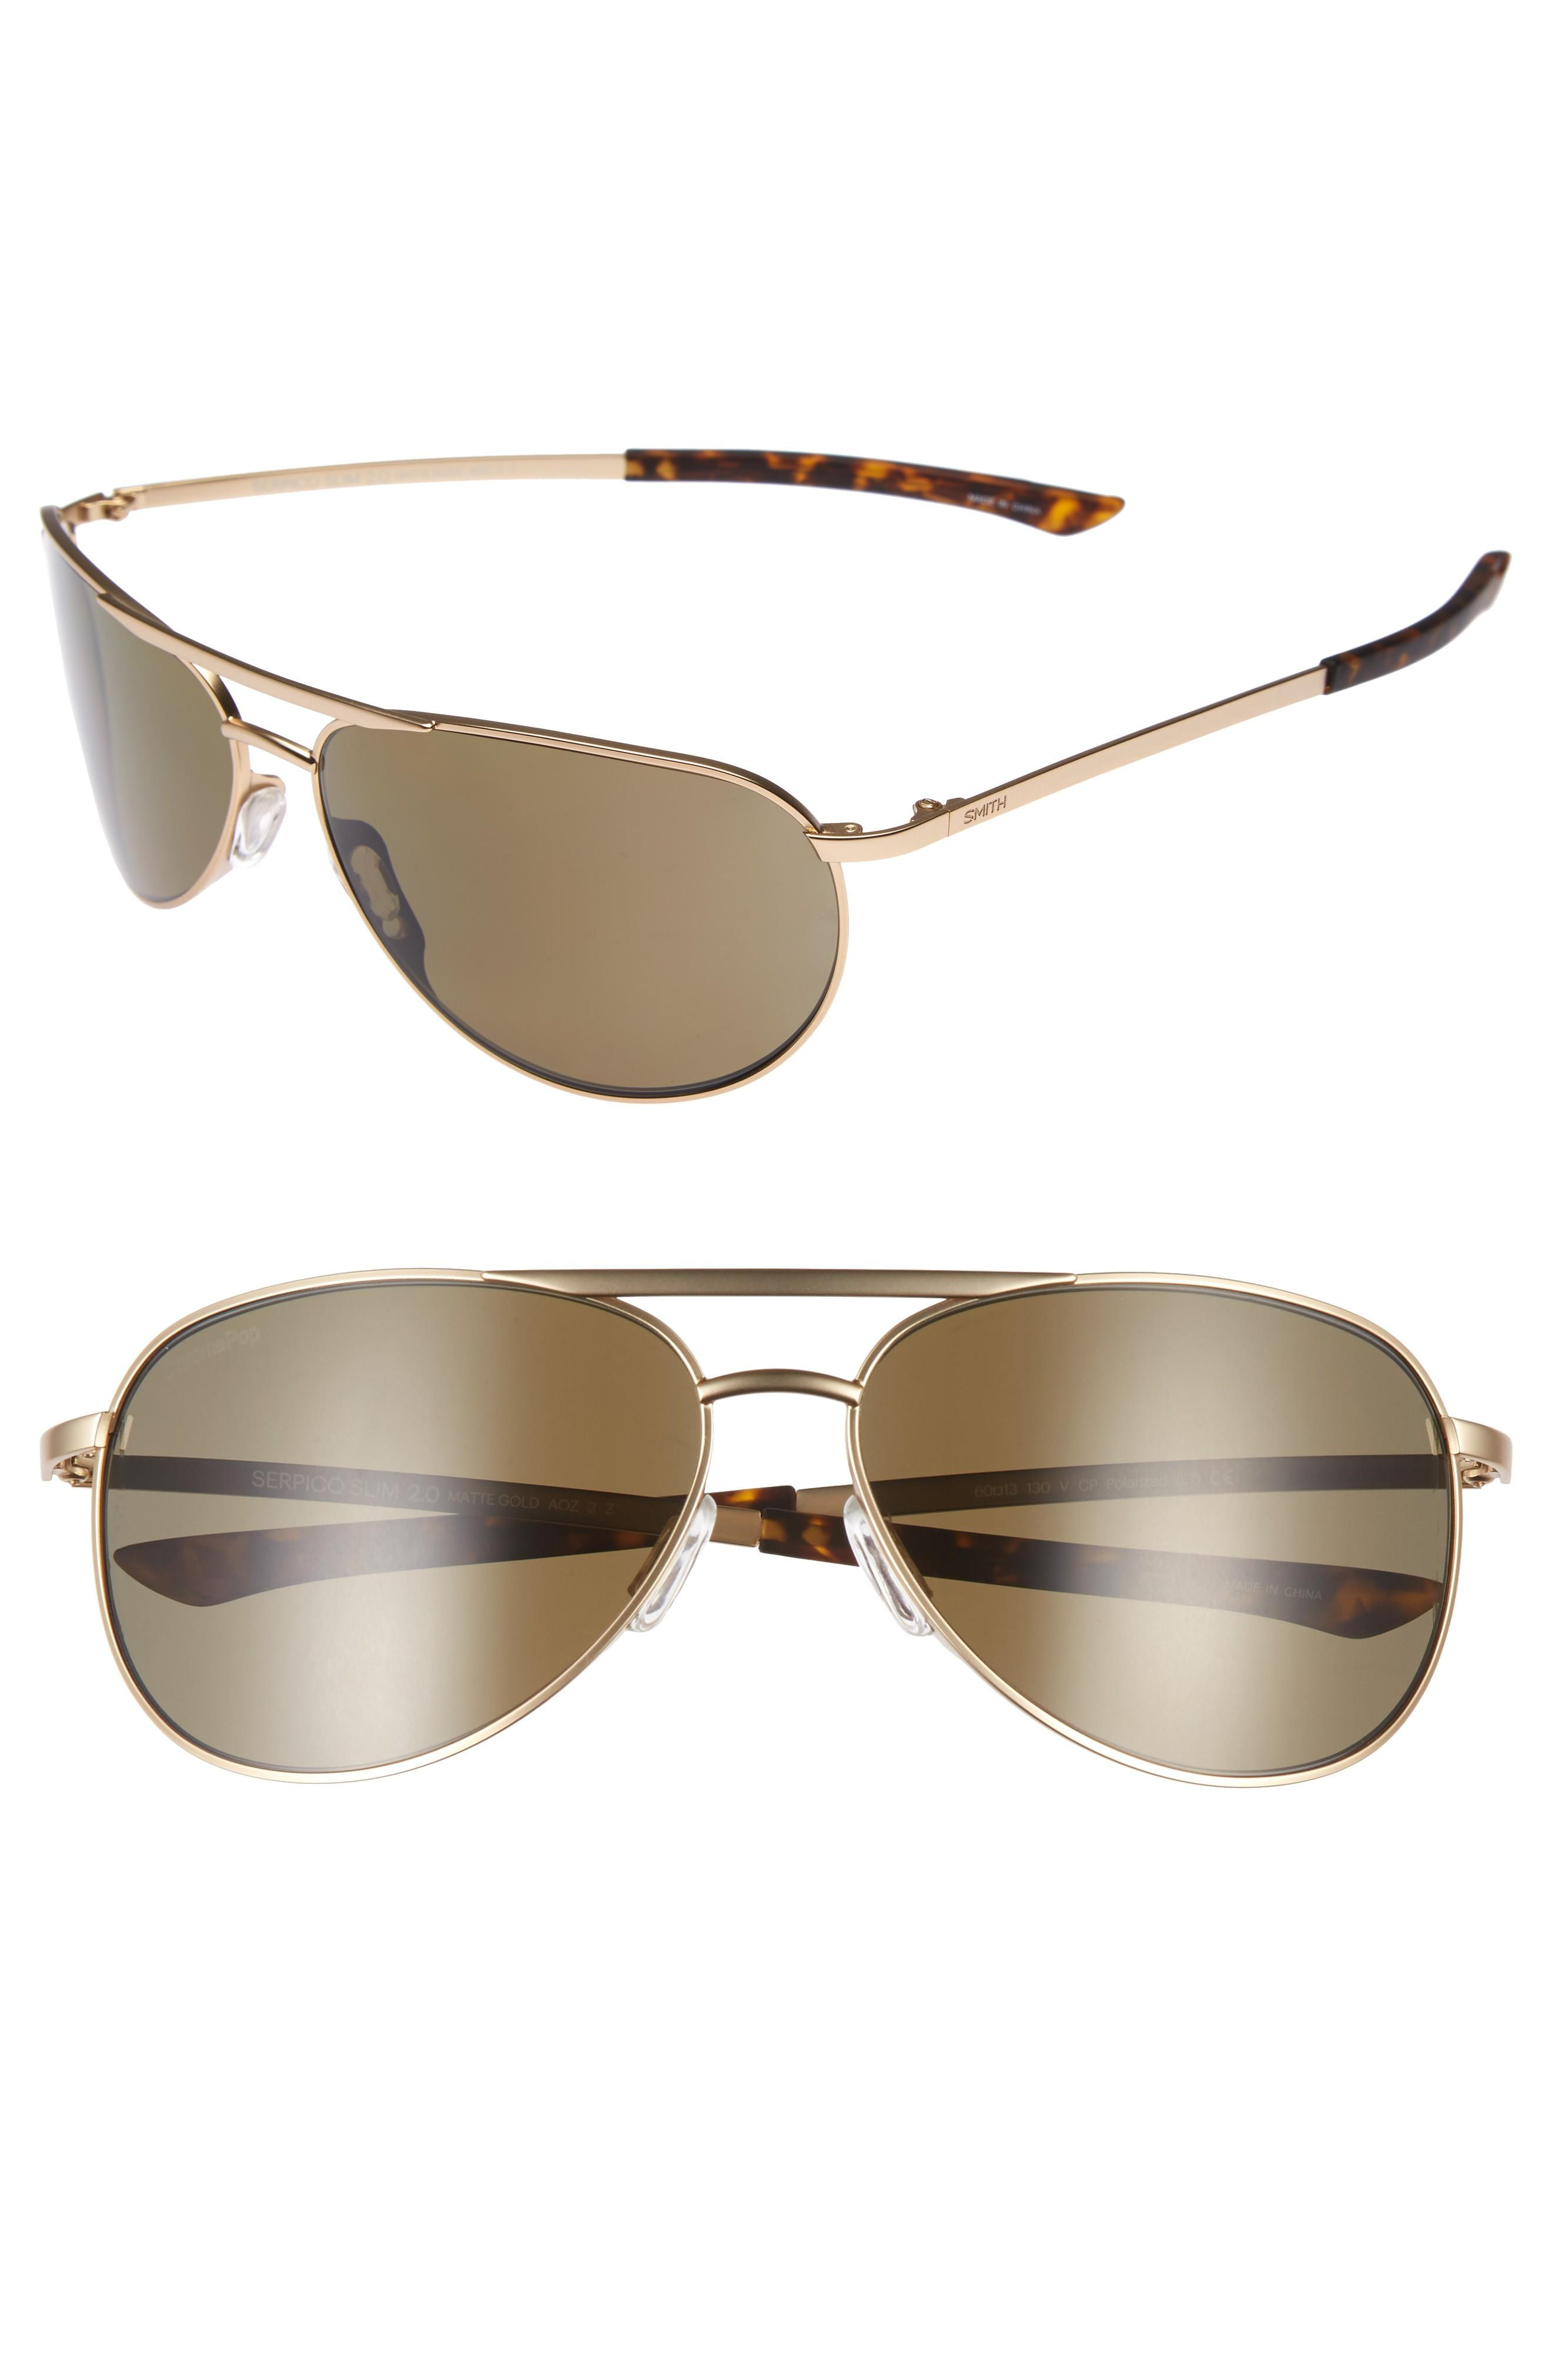 5e7269adaf27 Style Name  Smith Serpico Slim 2.0 60Mm Chromapop Polarized Aviator  Sunglasses. Style Number  5398691. Available in stores.